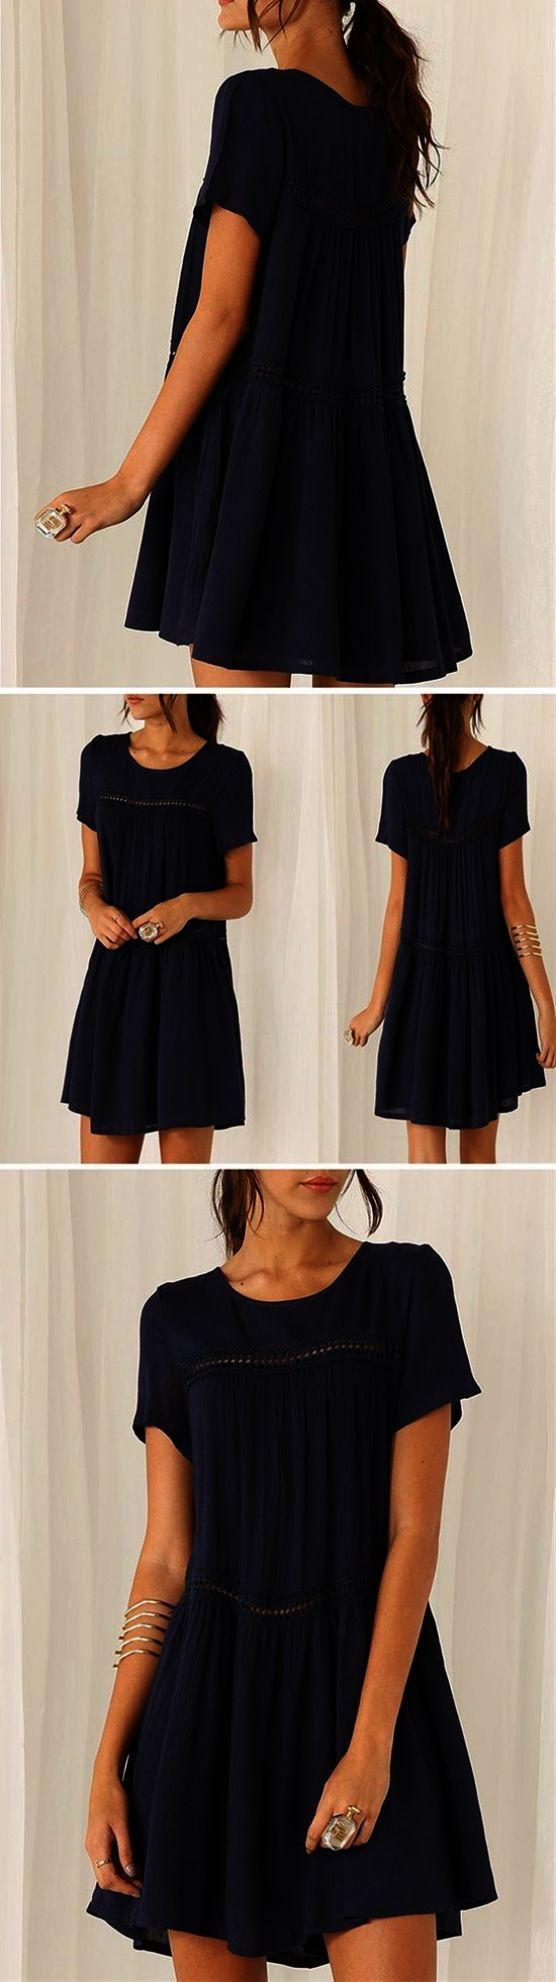 Casual dress design casual wear long skirts casual outfits for